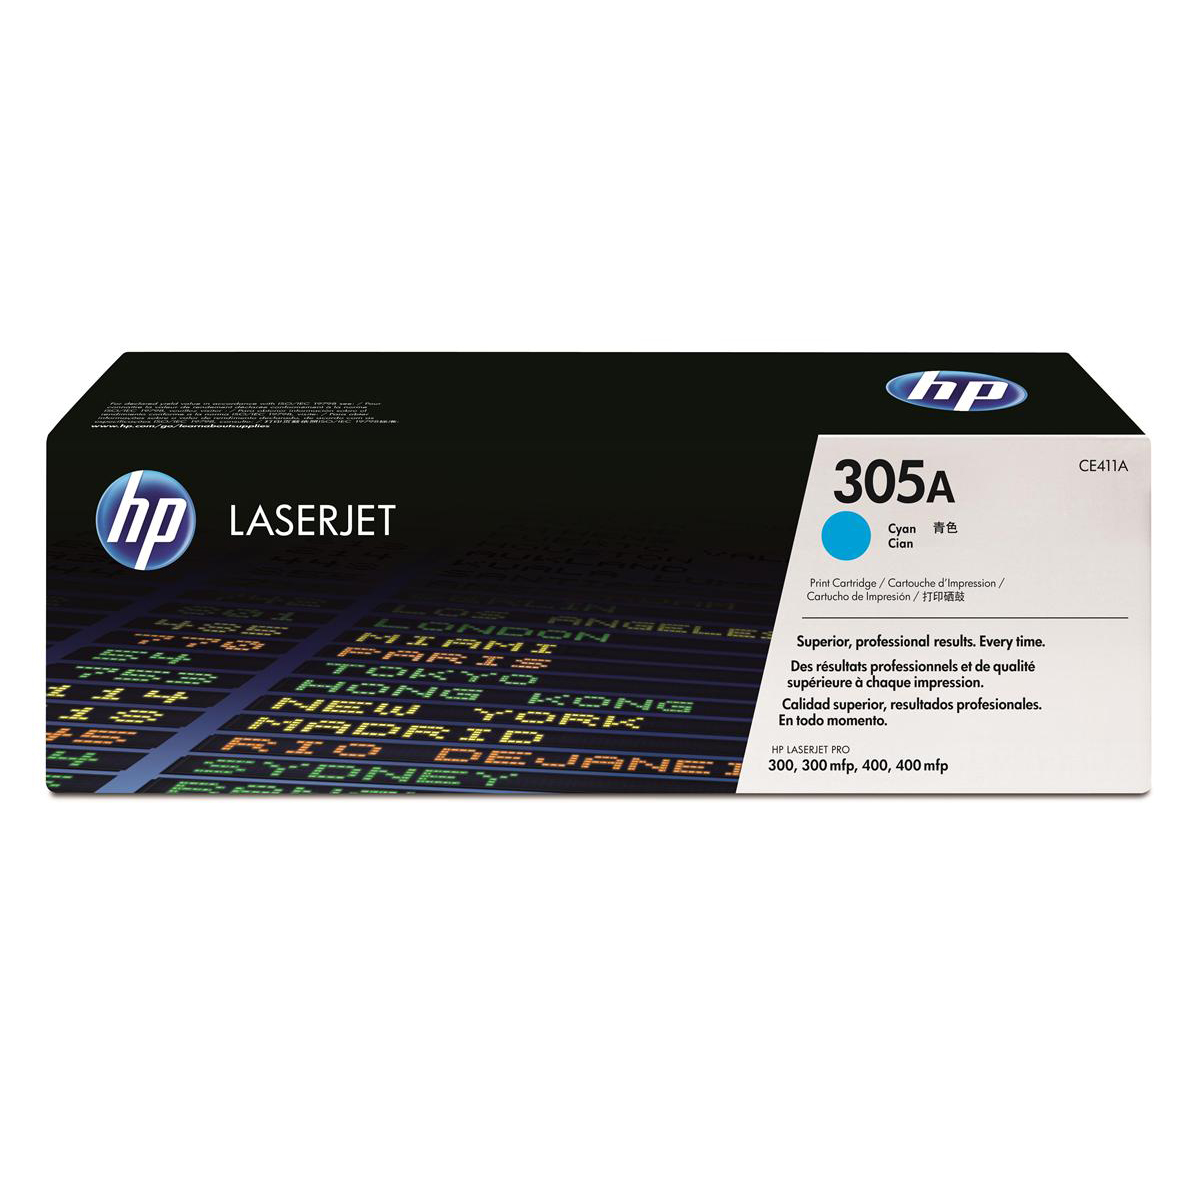 HP 305A Laser Toner Cartridge Page Life 2600pp Cyan Ref CE411A